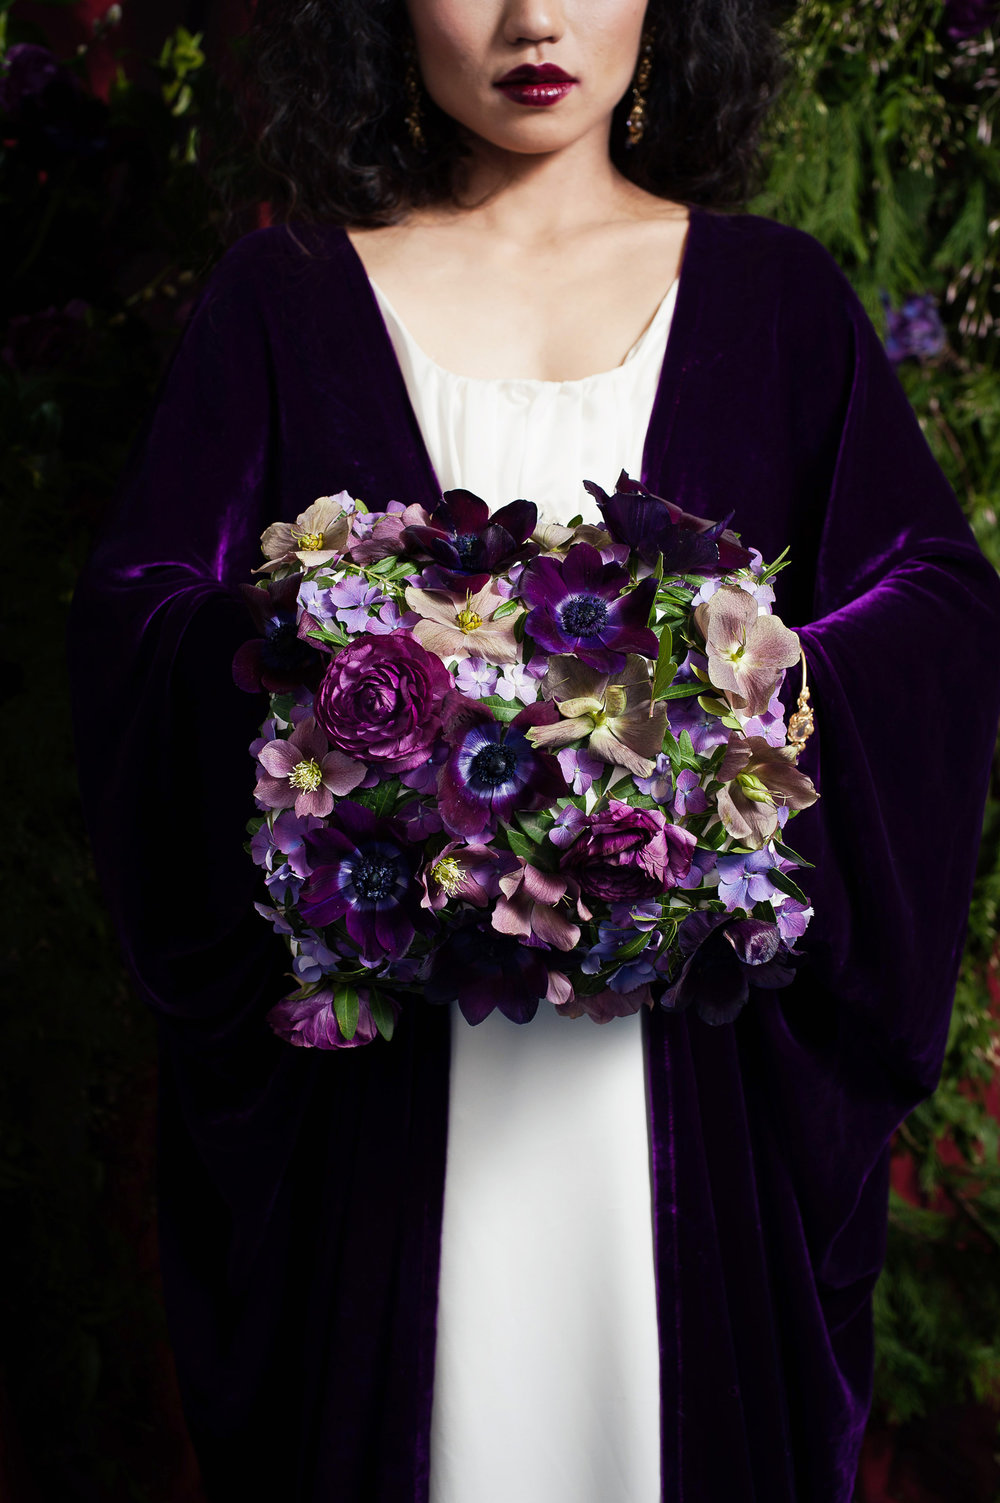 winter-wedding-sumptous-shoot-rich-purples-015.jpg